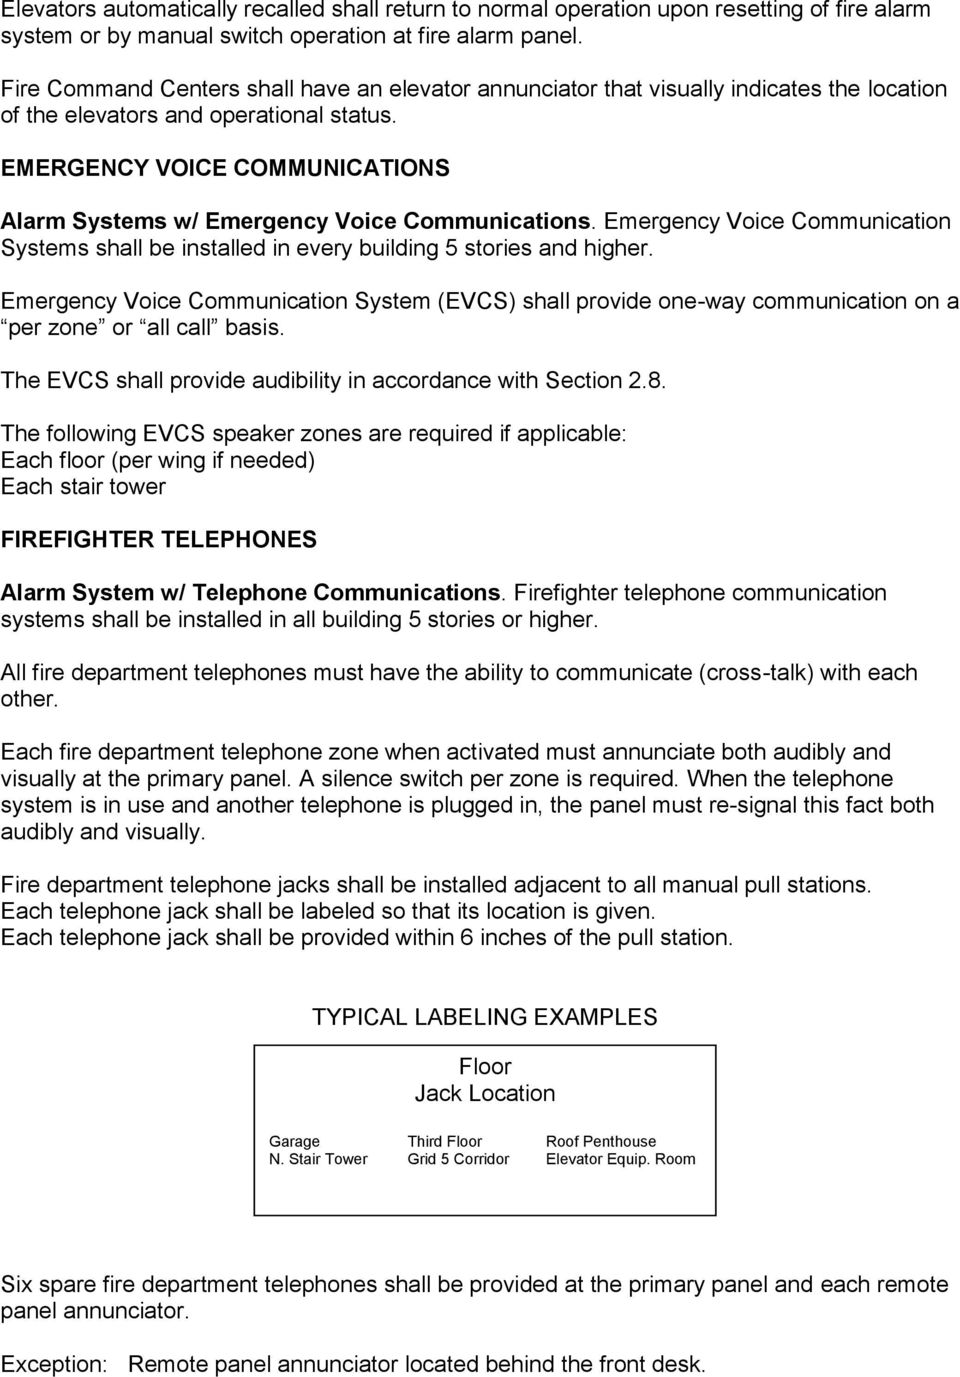 EMERGENCY VOICE COMMUNICATIONS Alarm Systems w/ Emergency Voice Communications. Emergency Voice Communication Systems shall be installed in every building 5 stories and higher.